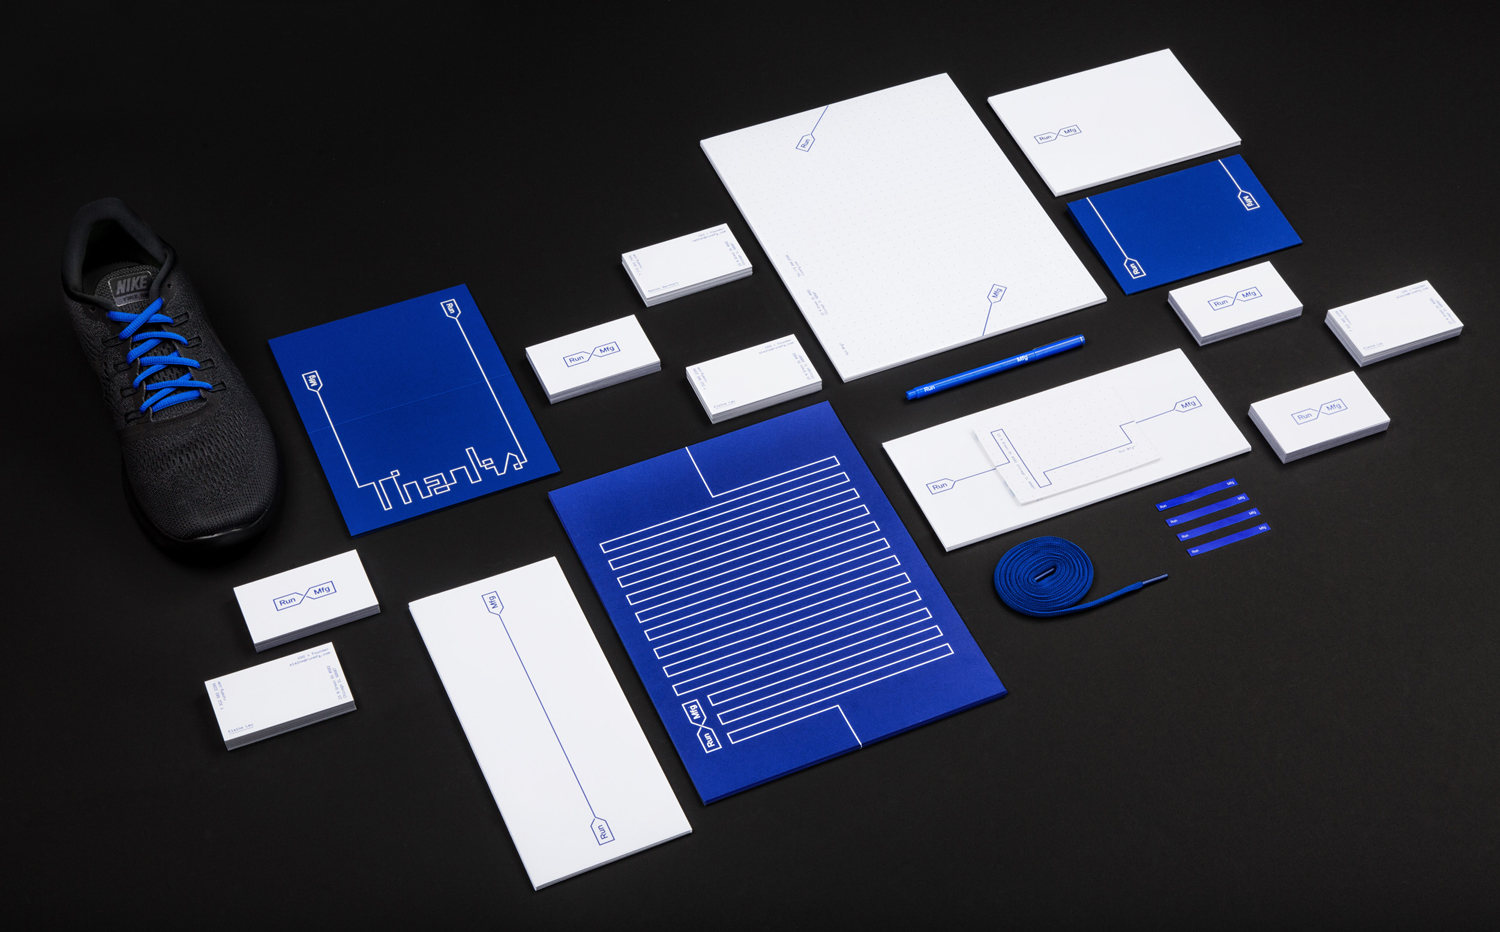 Brand identity, print and stationery by Perky Bros for Chicago-based independent race design and production company Run Mfg